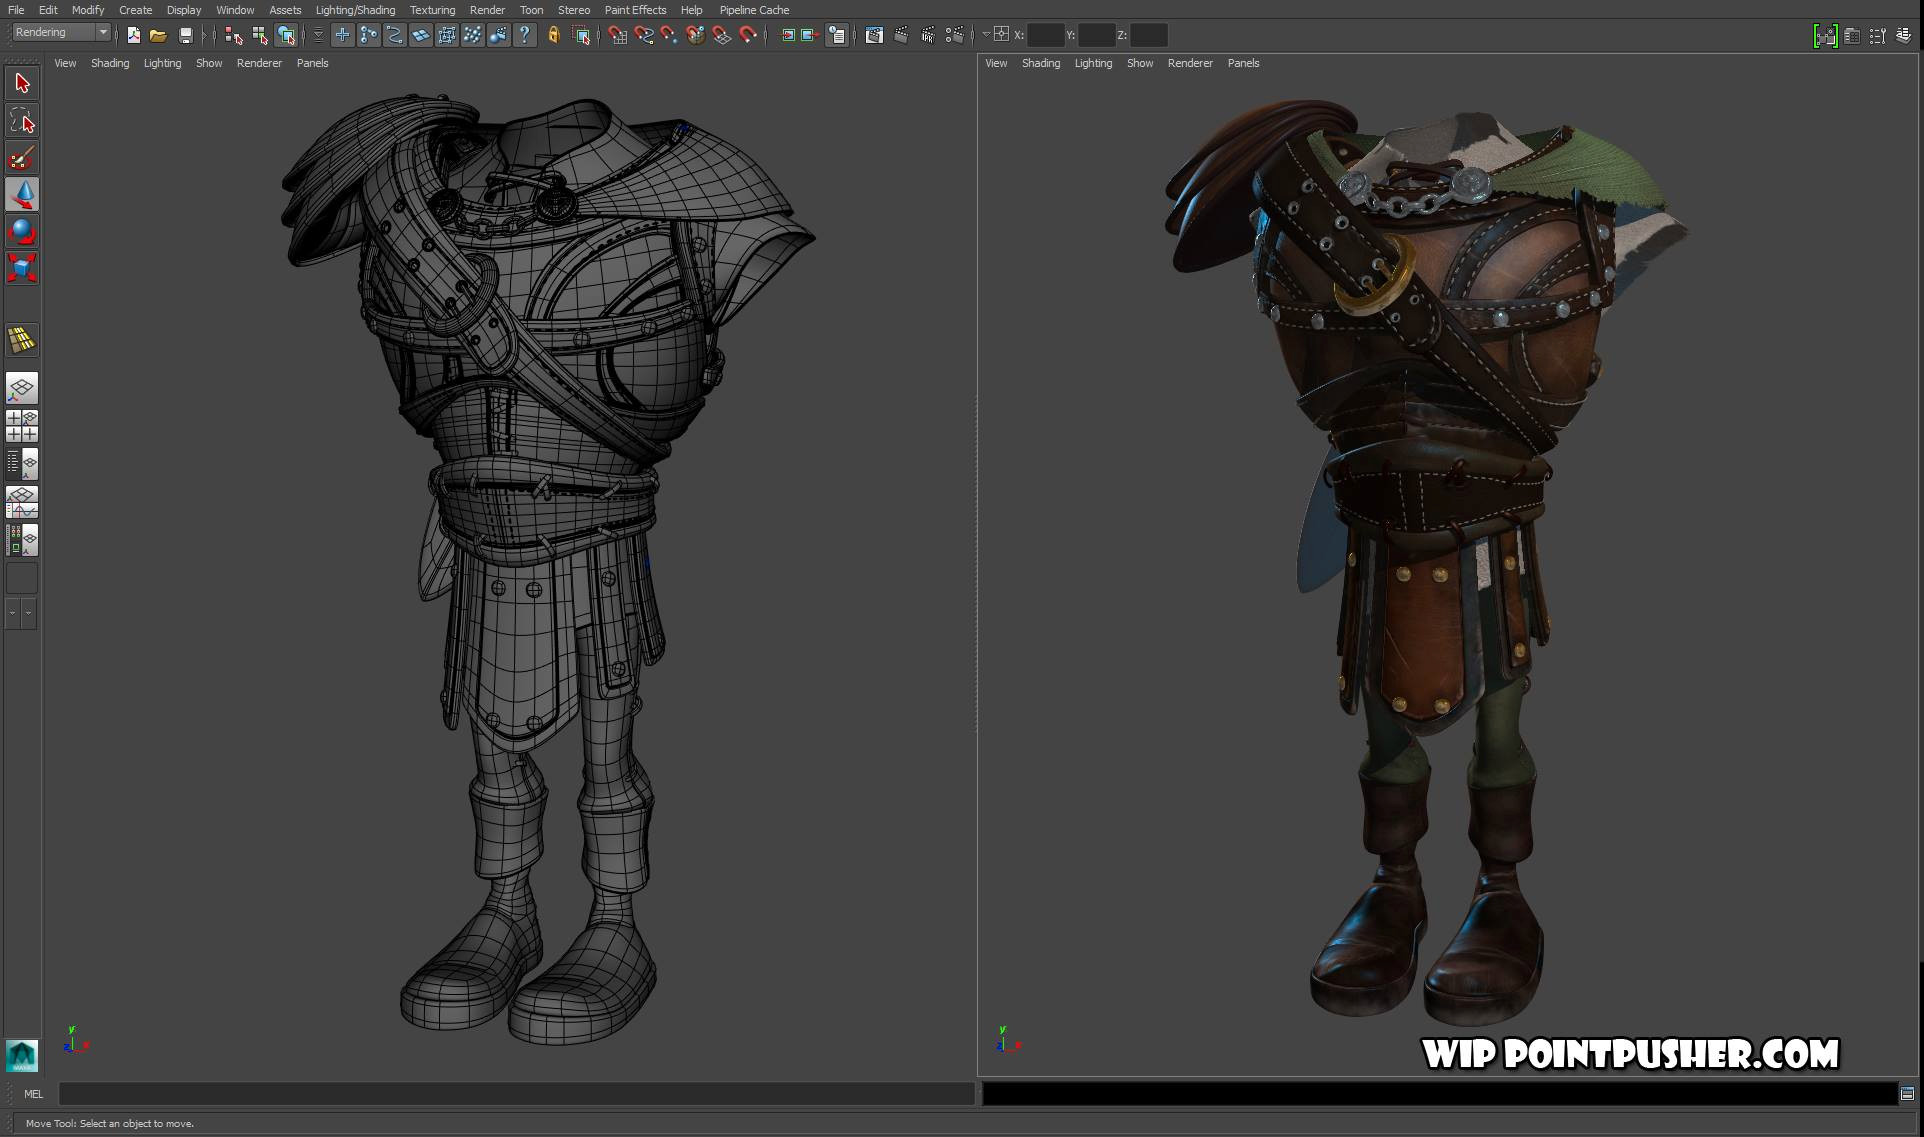 A shot of retopo and costume textures: (zbrush/maya/photoshop)